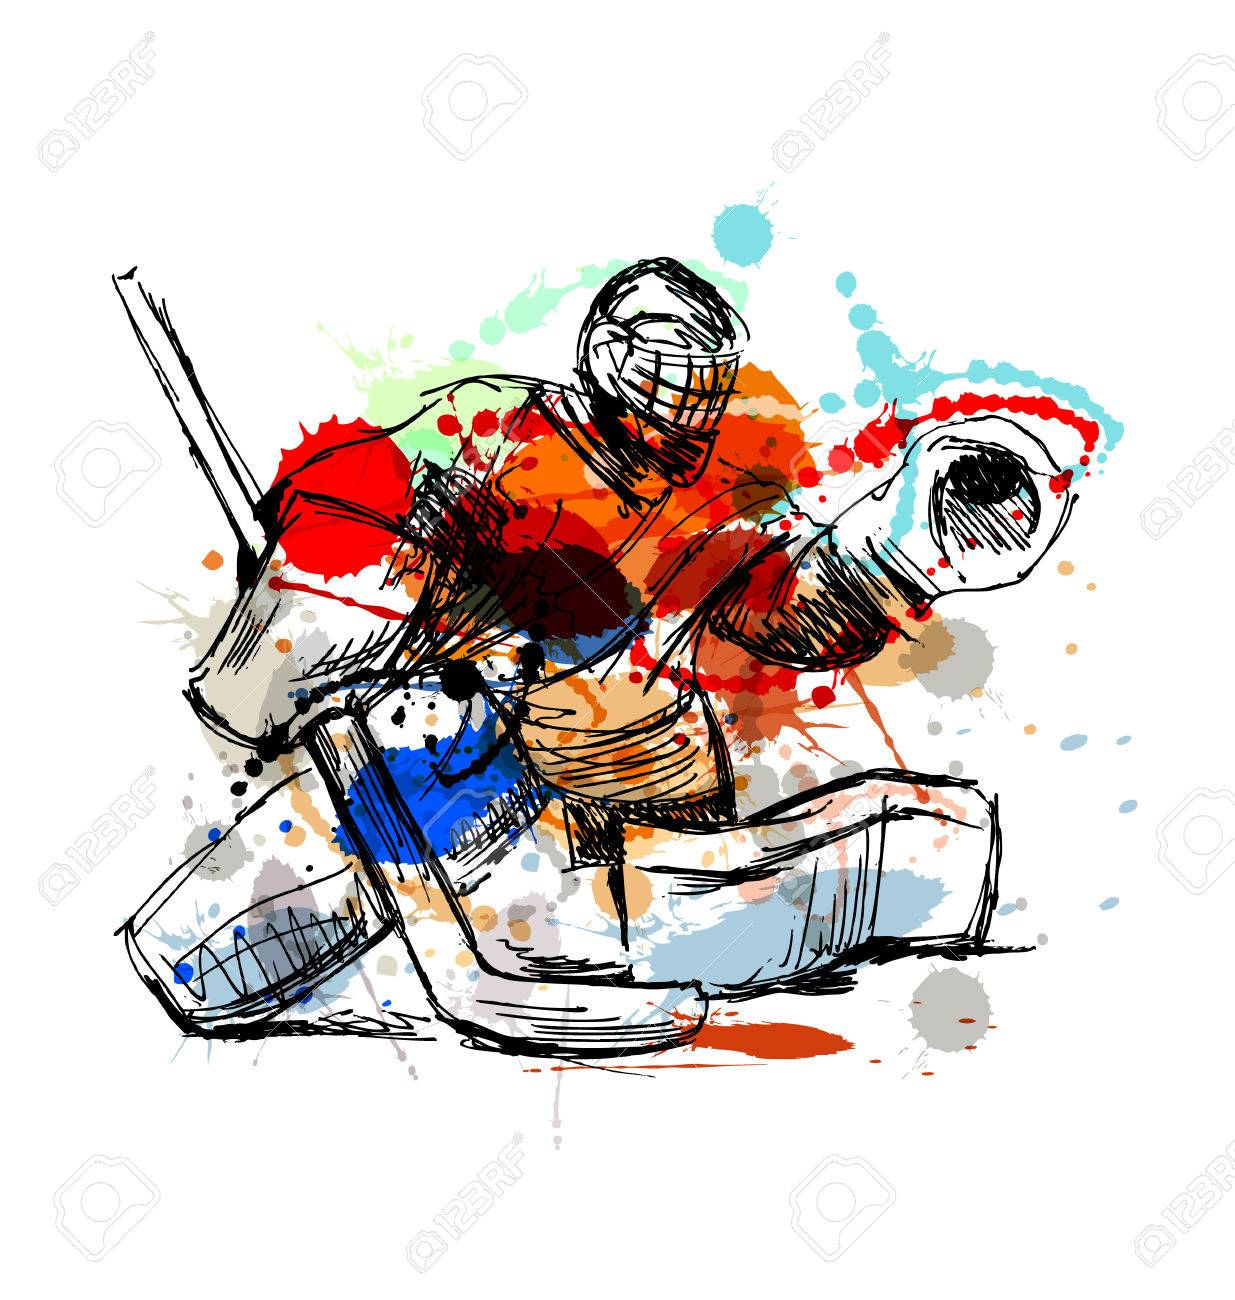 Colored Hand Sketch Hockey Goalie Vector Illustration Royalty Free